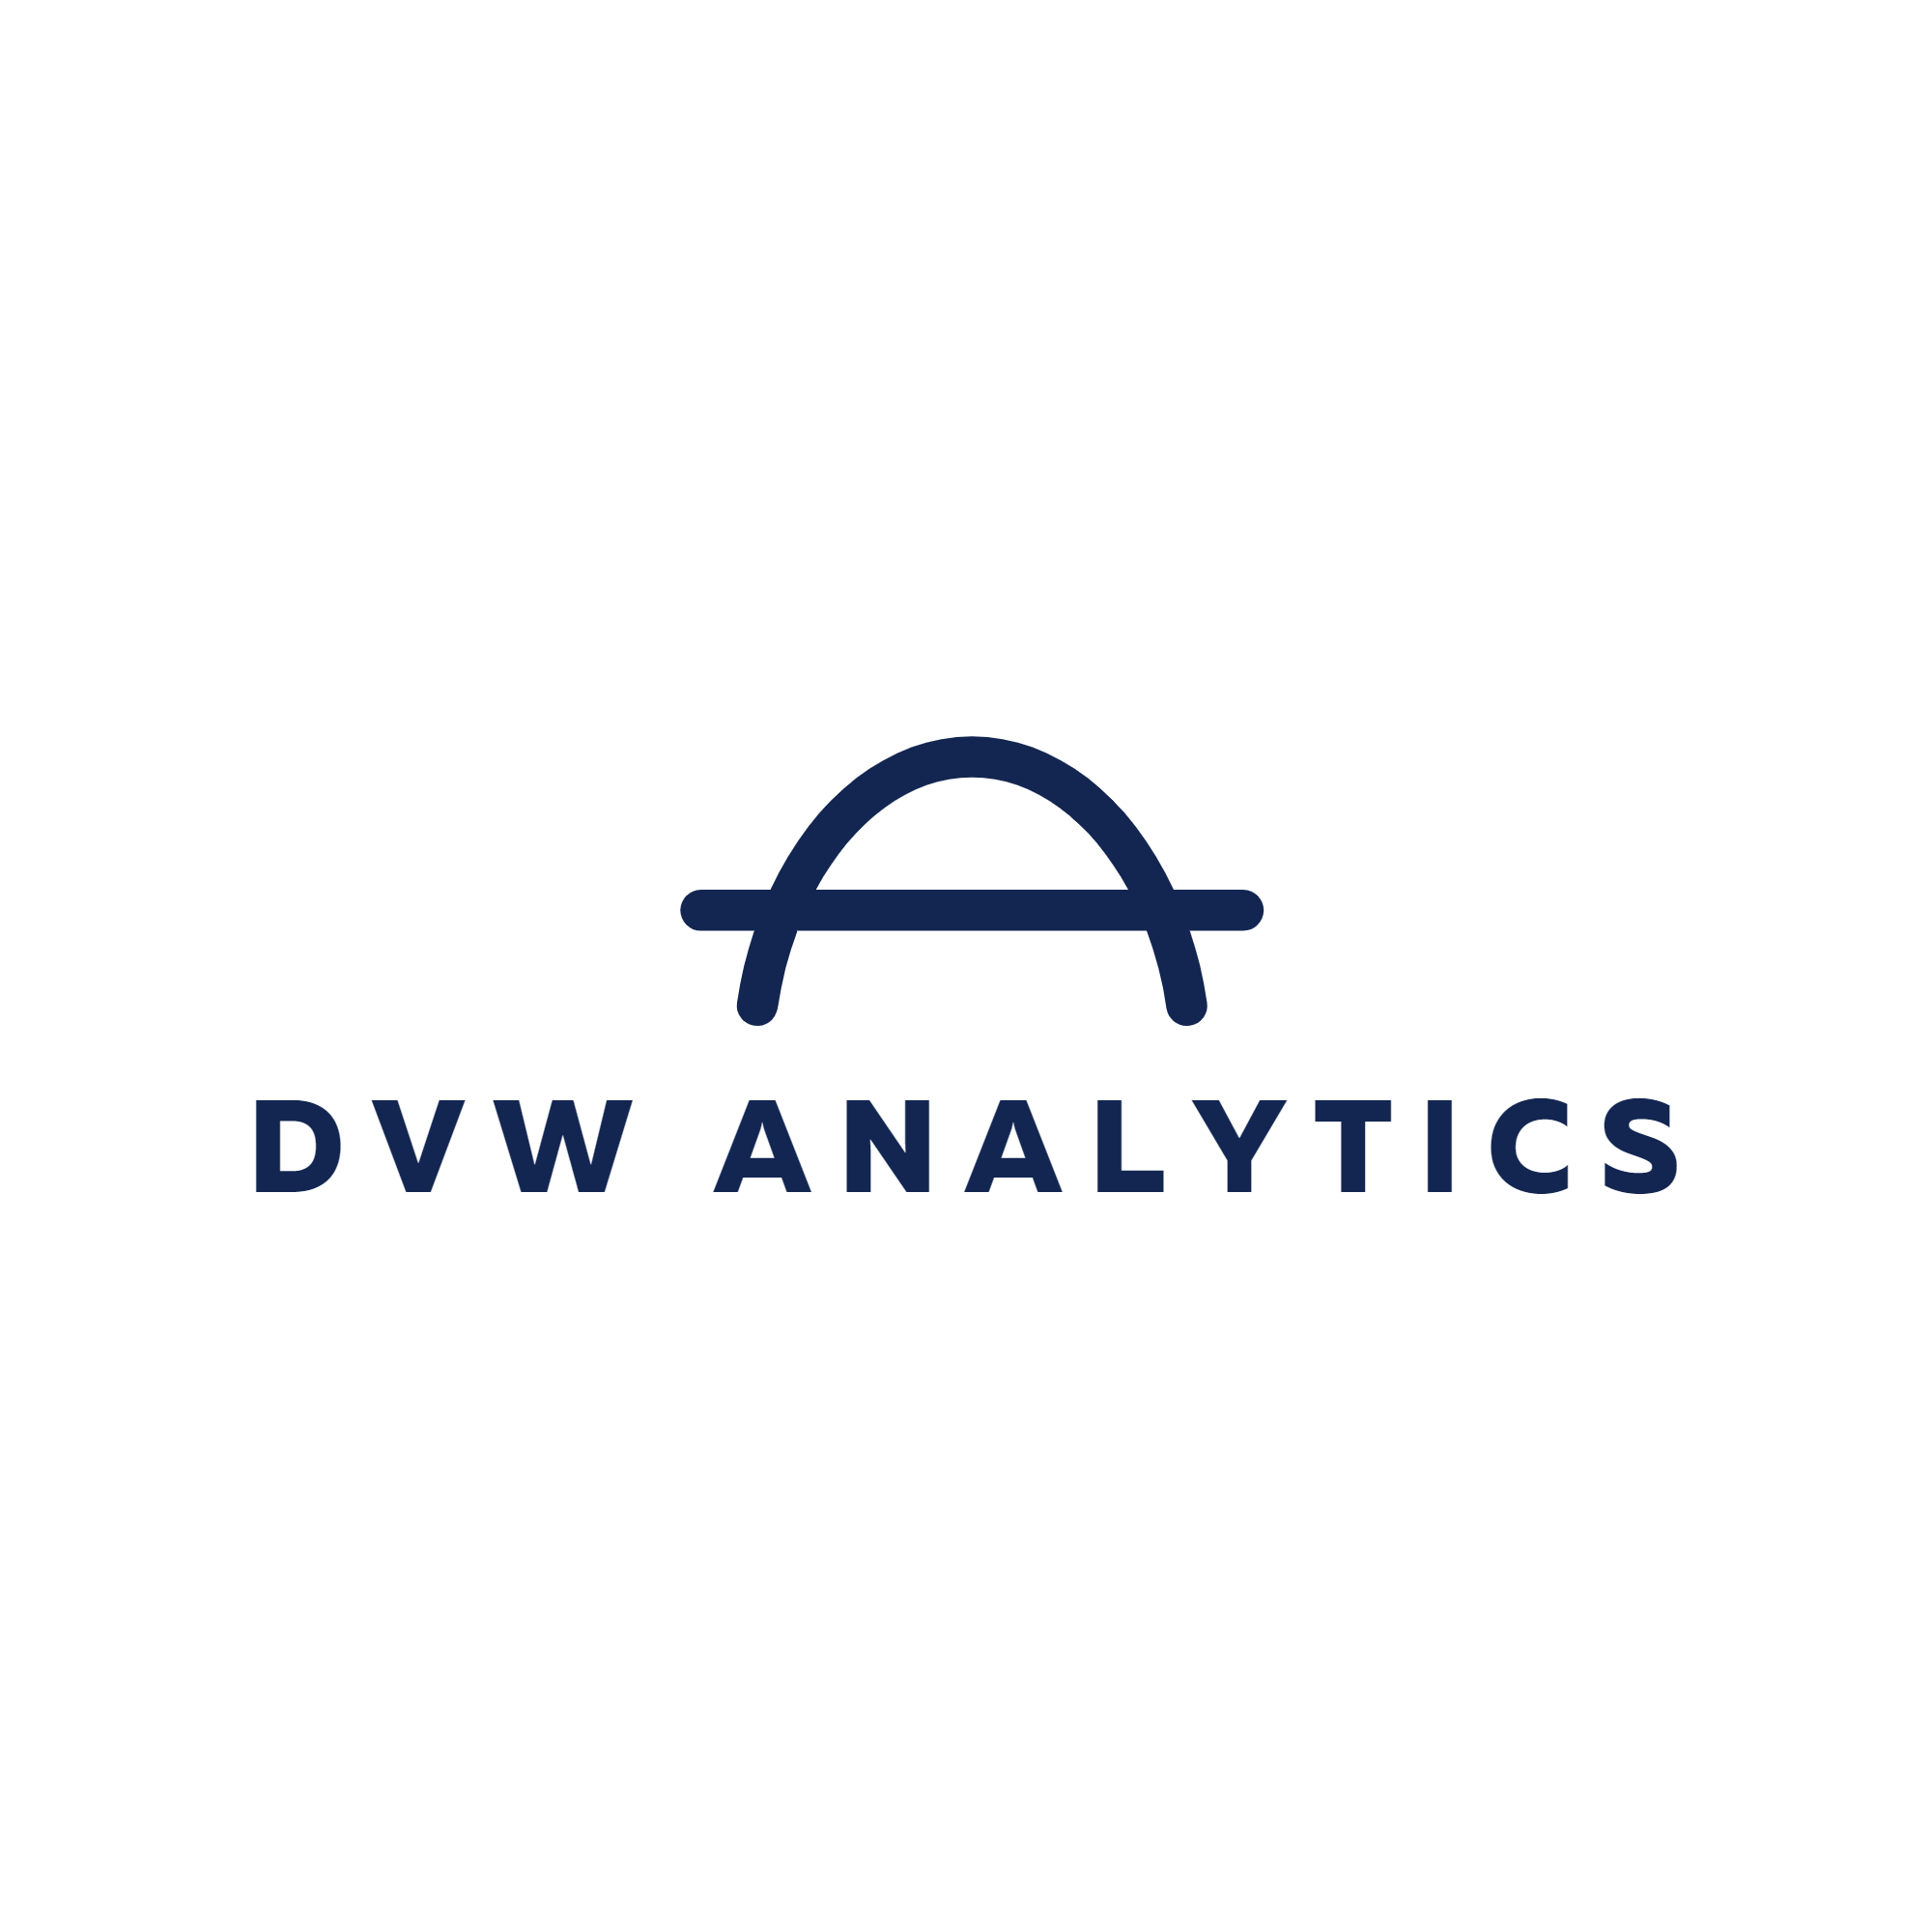 DVW_Analytics_vertical_on_white.png